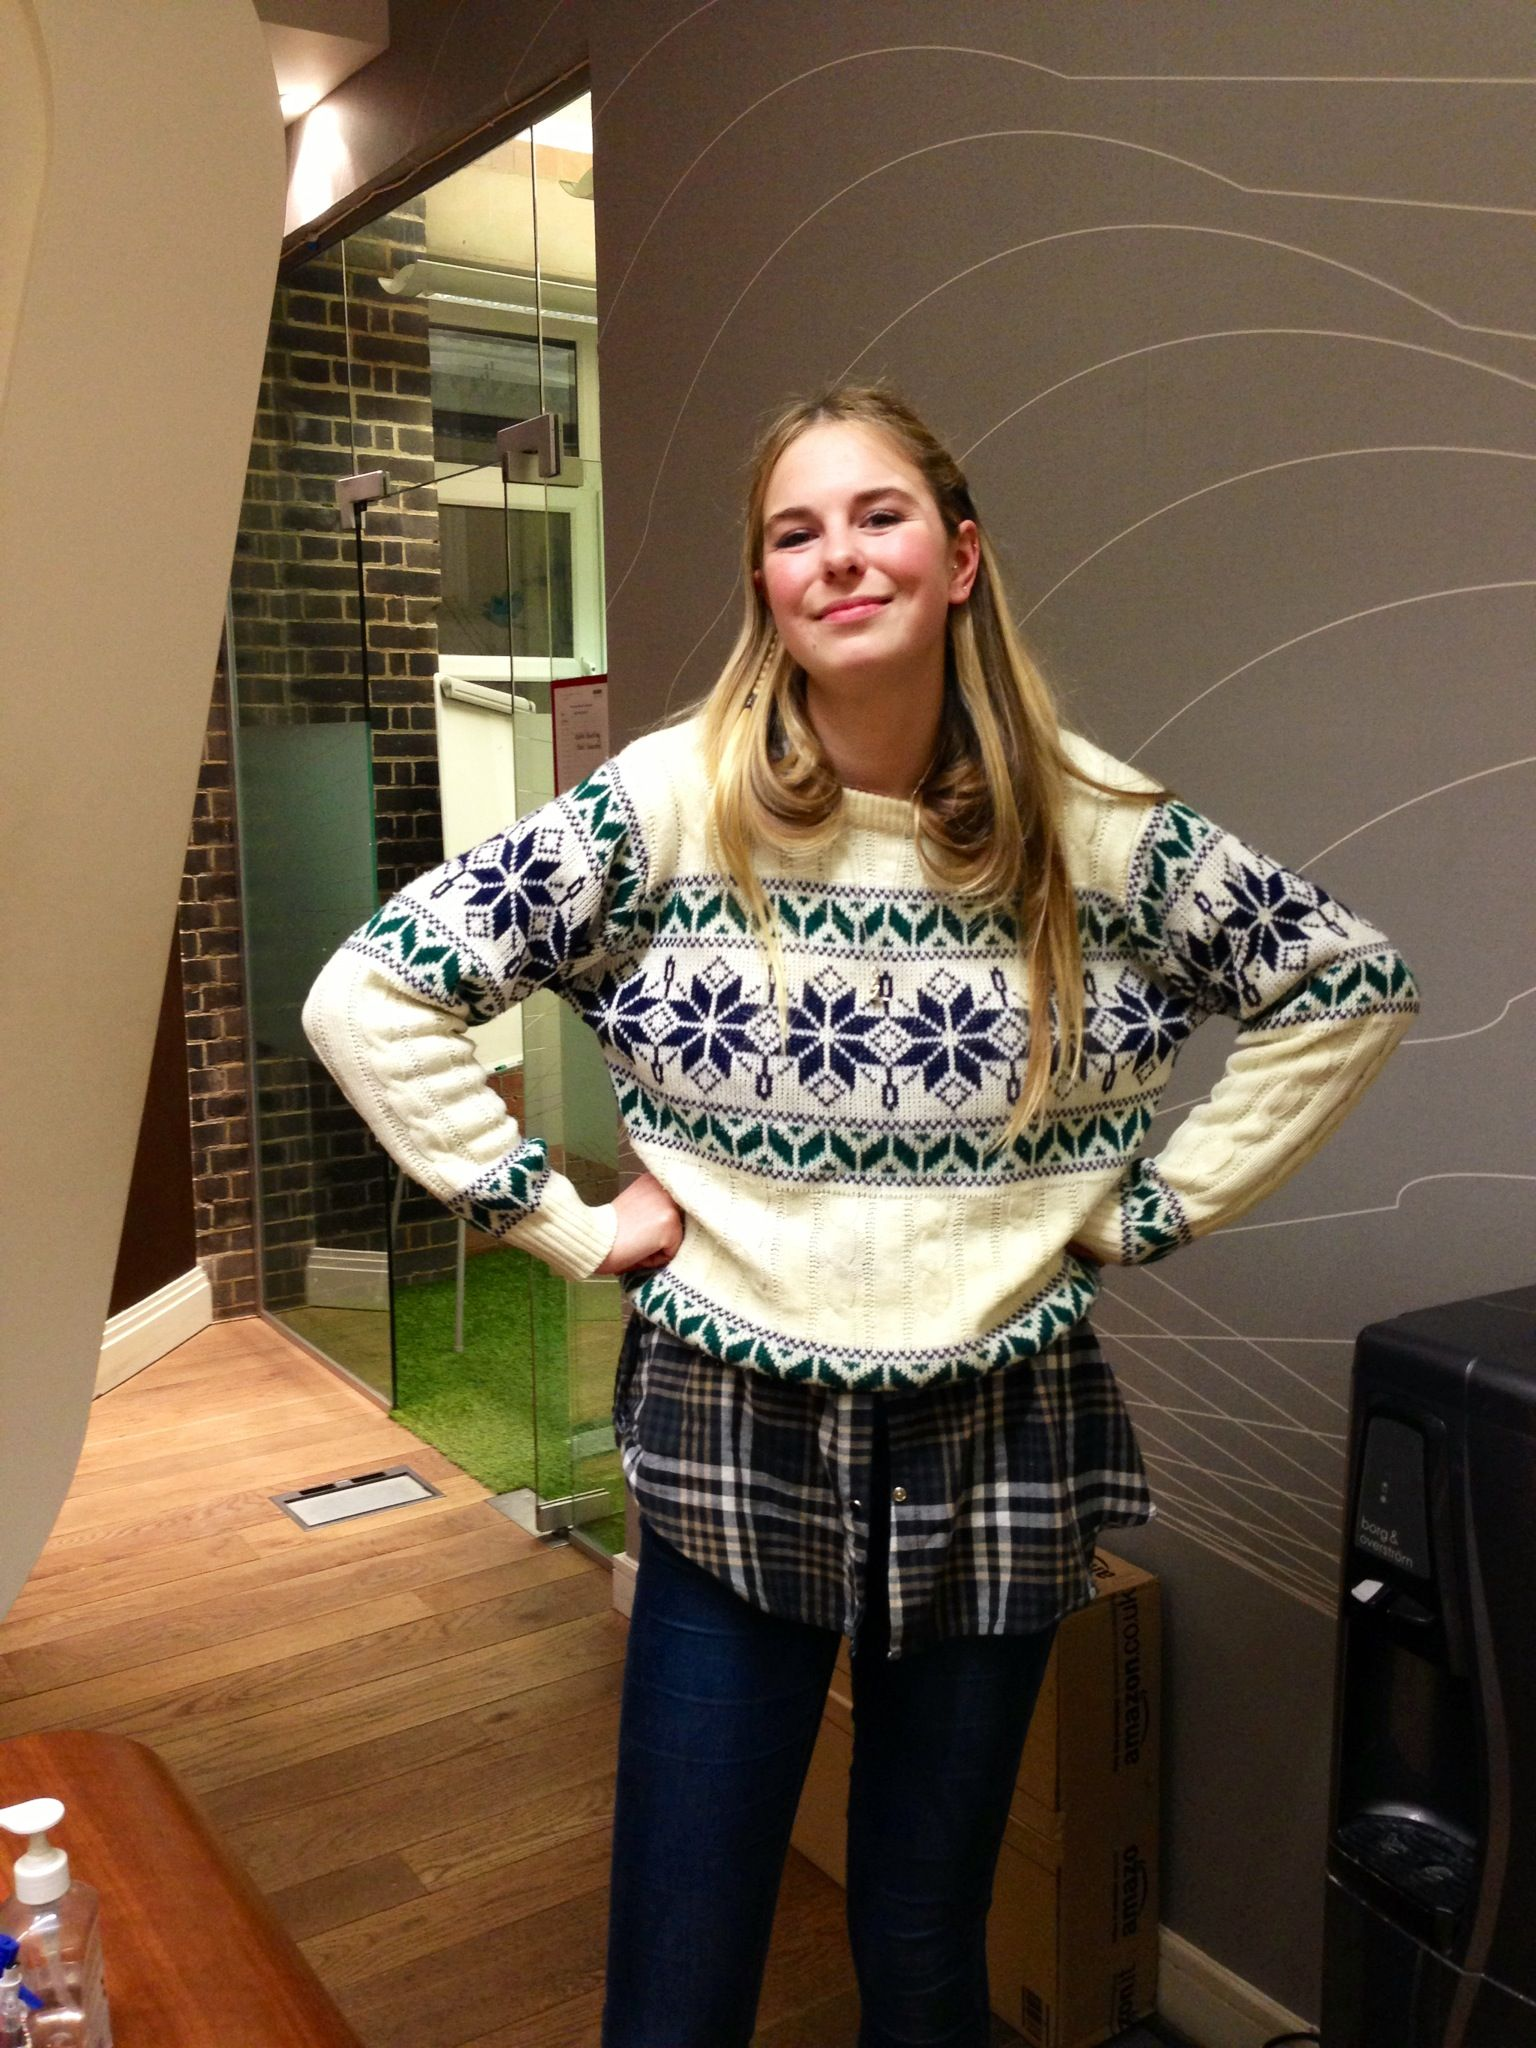 Our first Christmas jumper in the office! Christmas